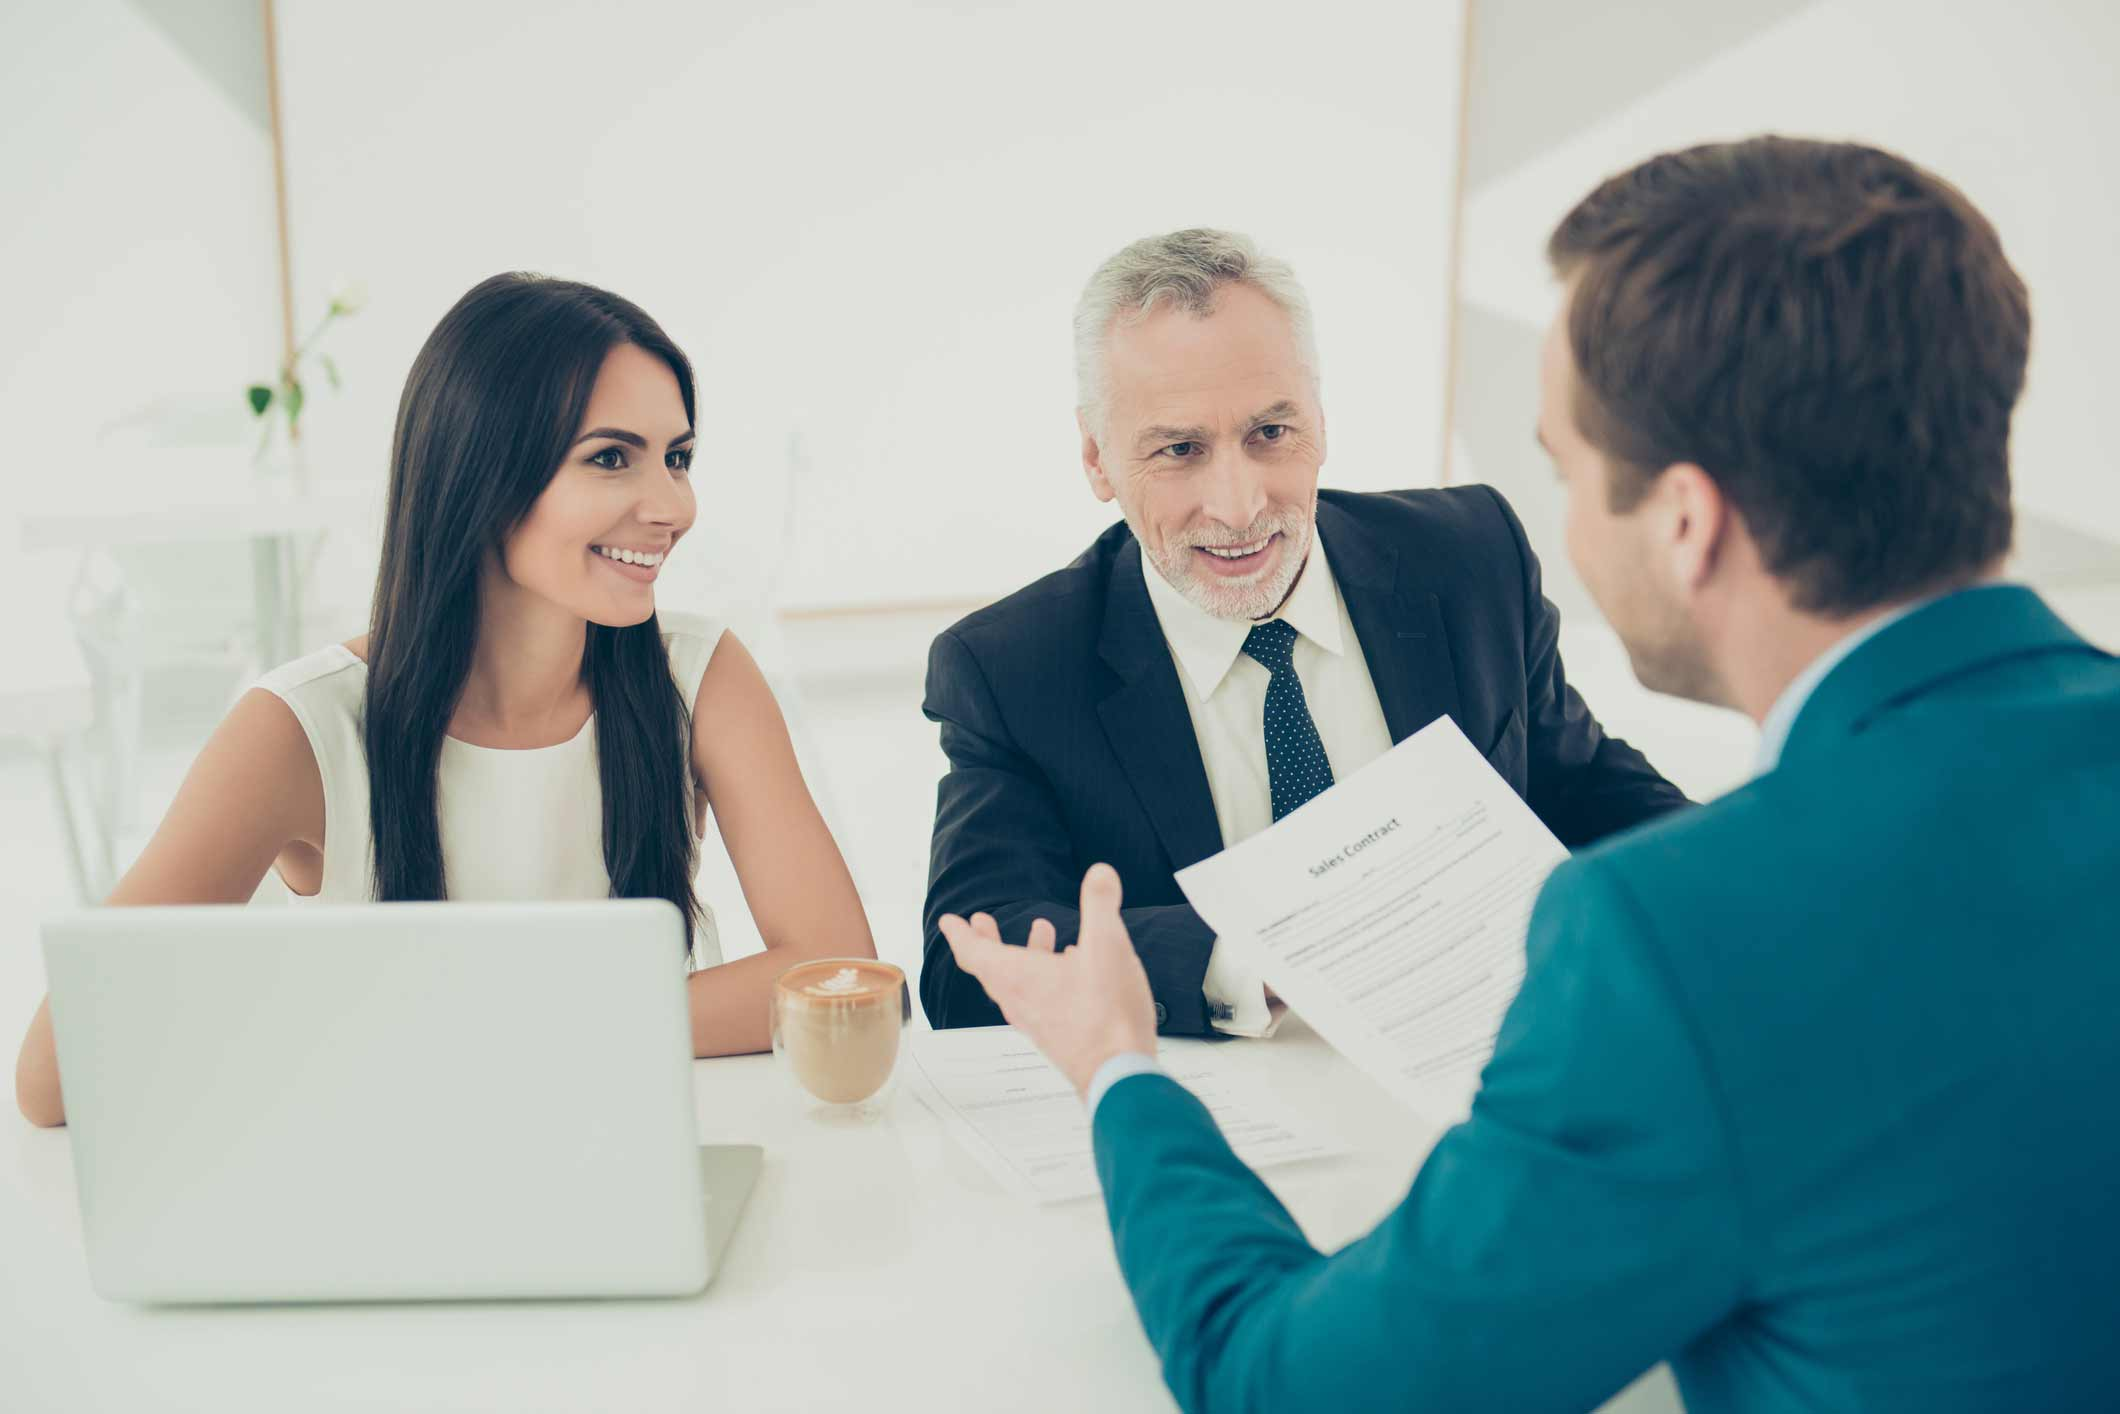 Clients Consulting a Legal Consultation Advisor